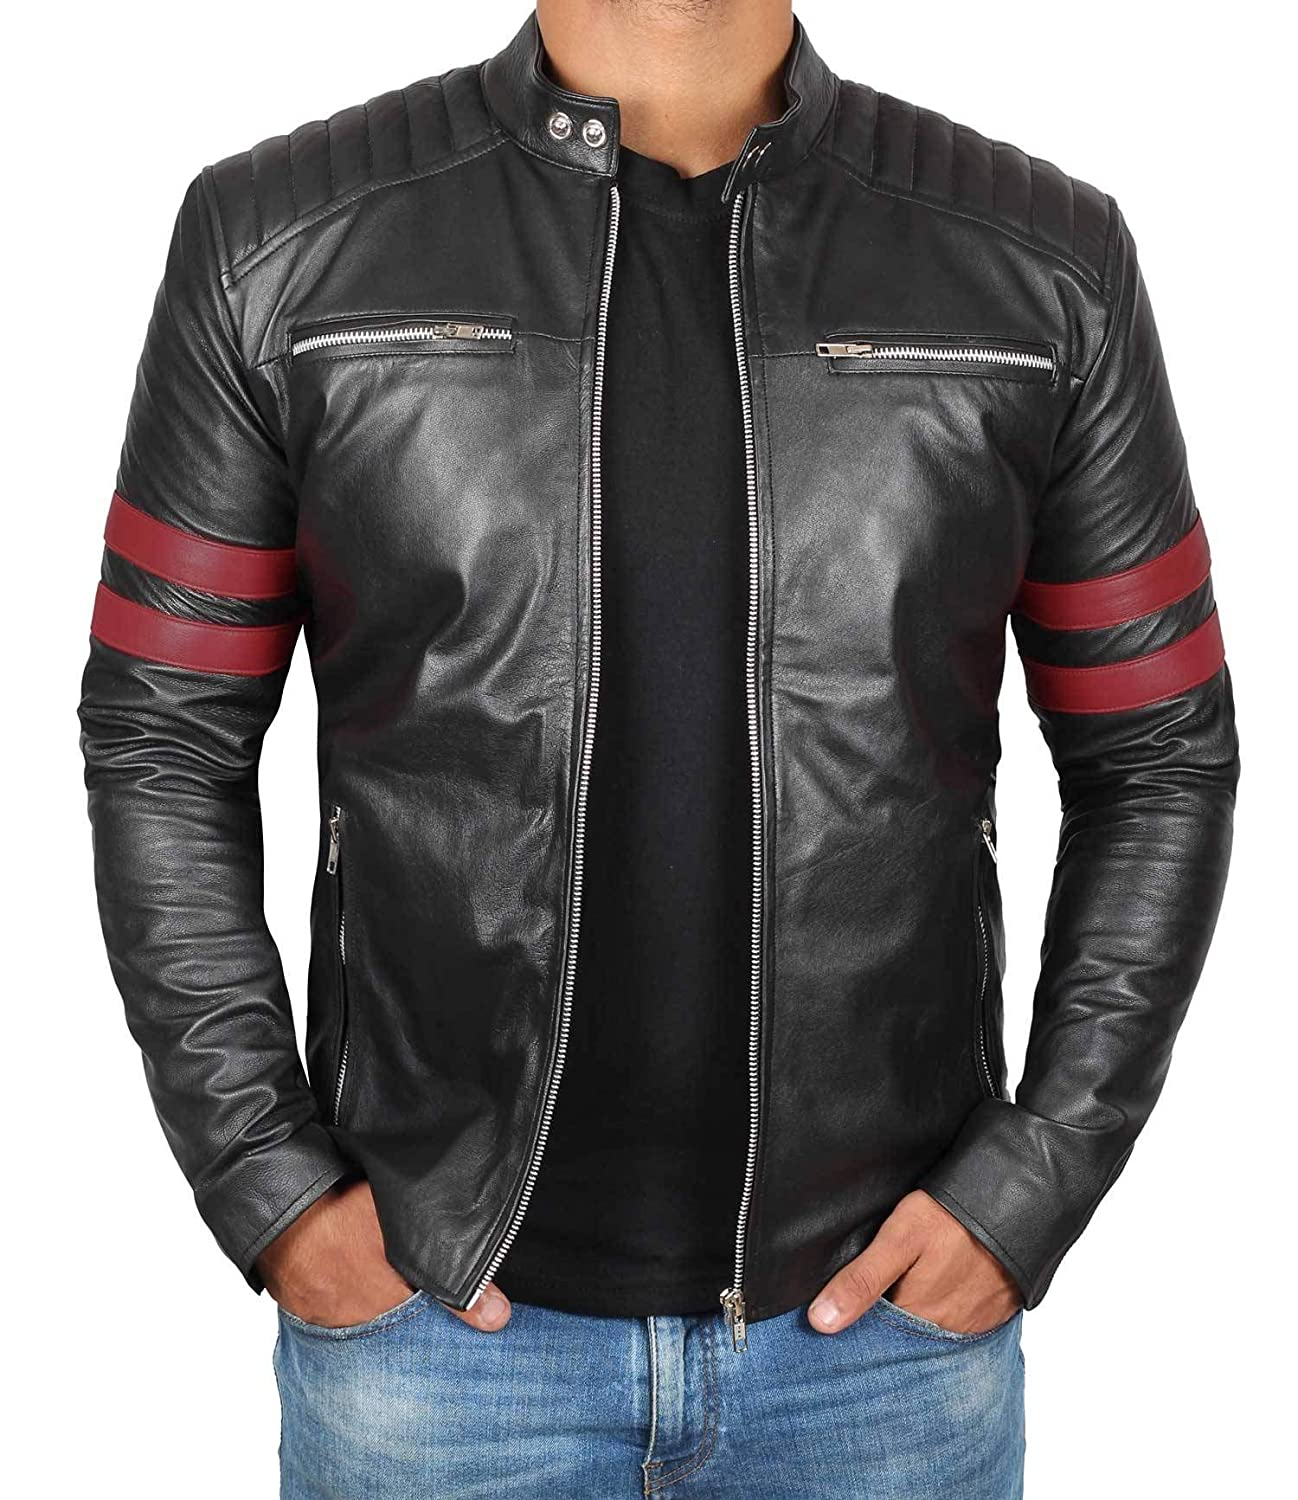 Genuine Black Leather Jacket Men - Cafe Racer Motorcycle Leather Jackets for Mens BSO-BL-Leather-Jacket-PP